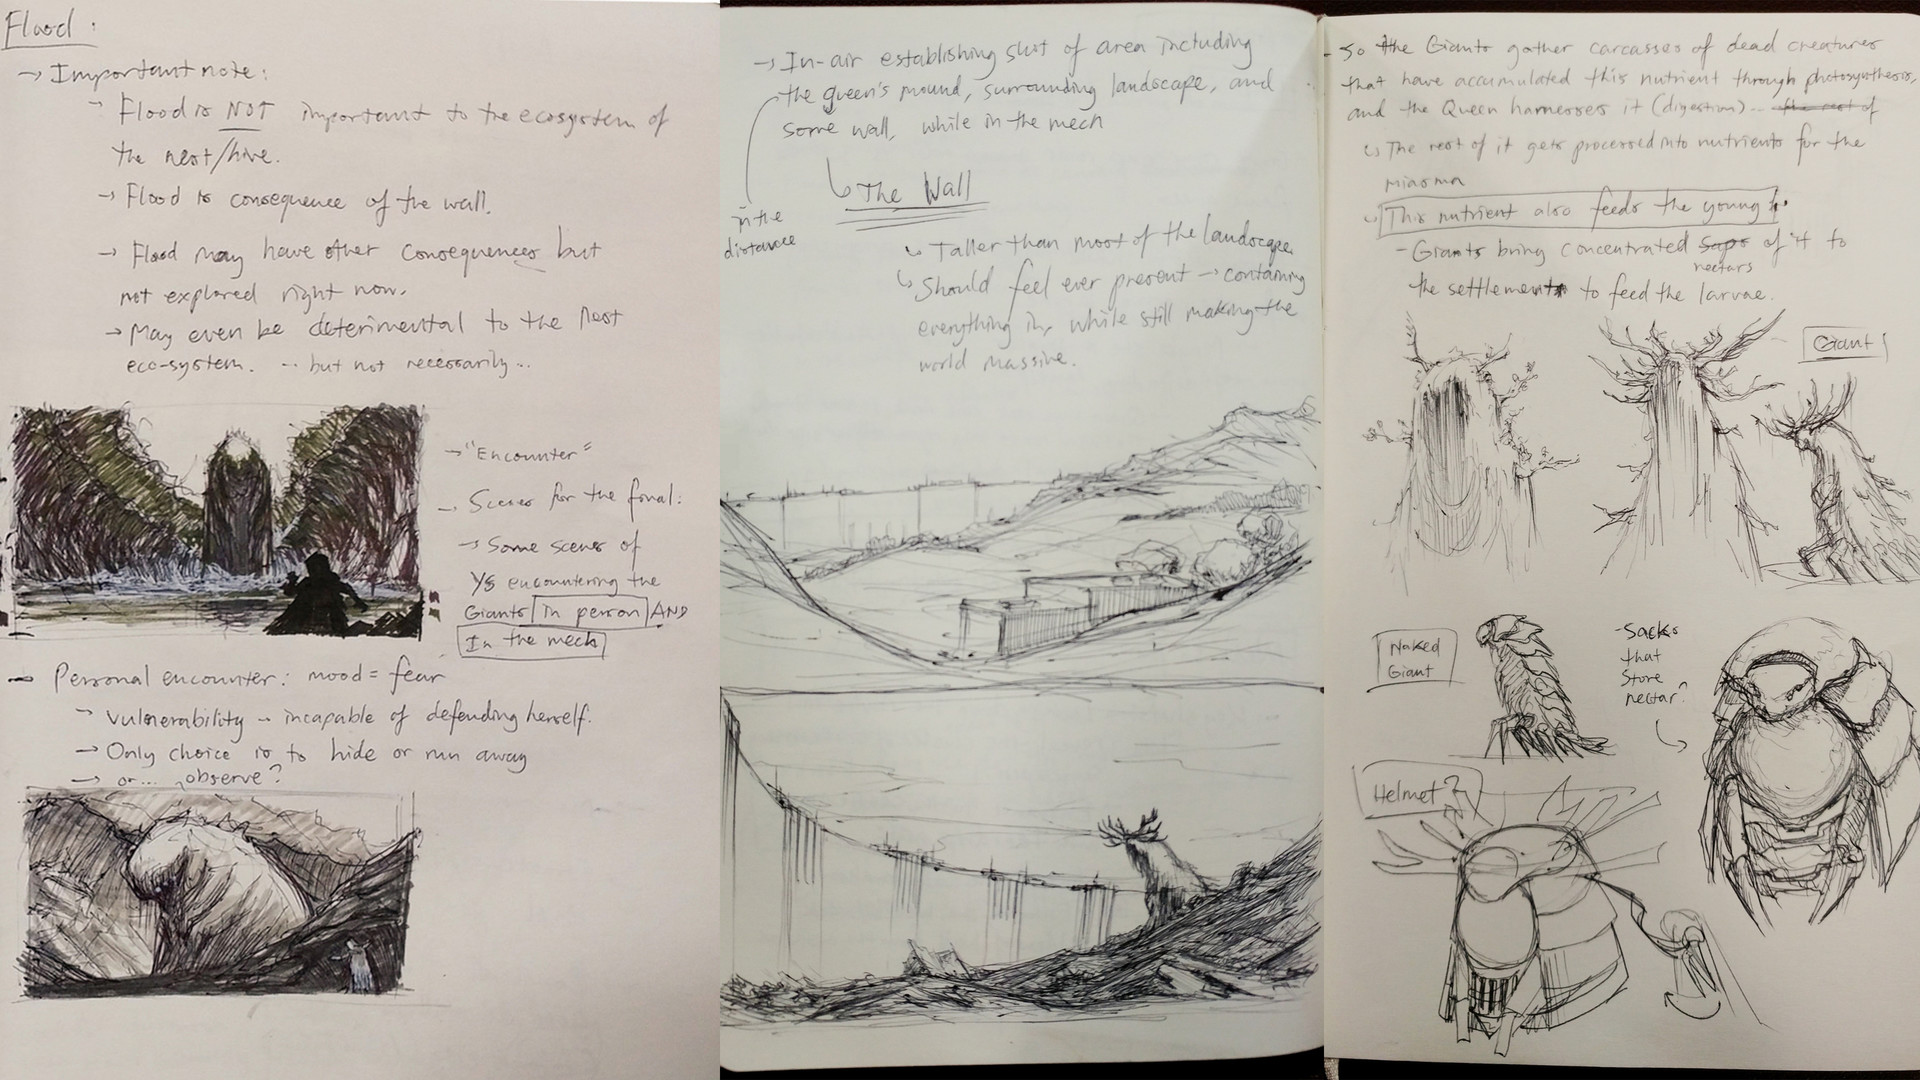 Preliminary early sketches and notes